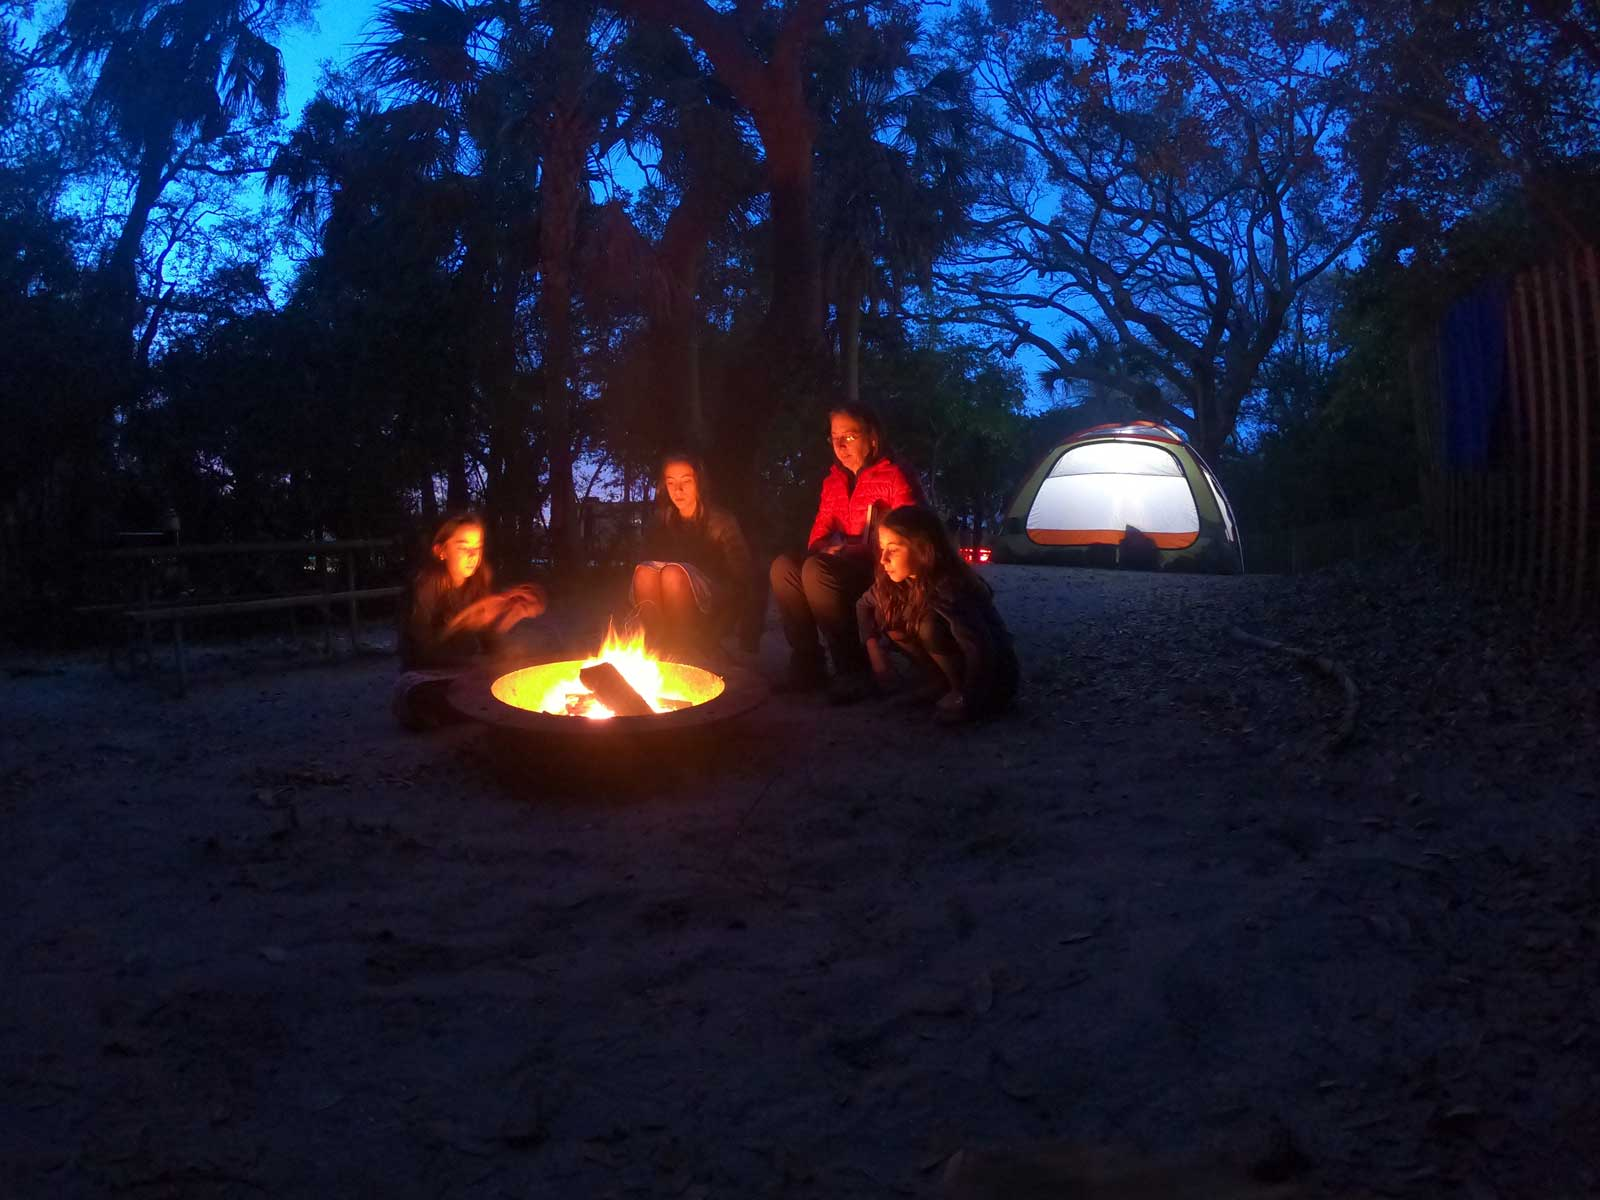 Family gathered around a campfire at night with glowing tent in the background at Edisto Beach State Park, SC